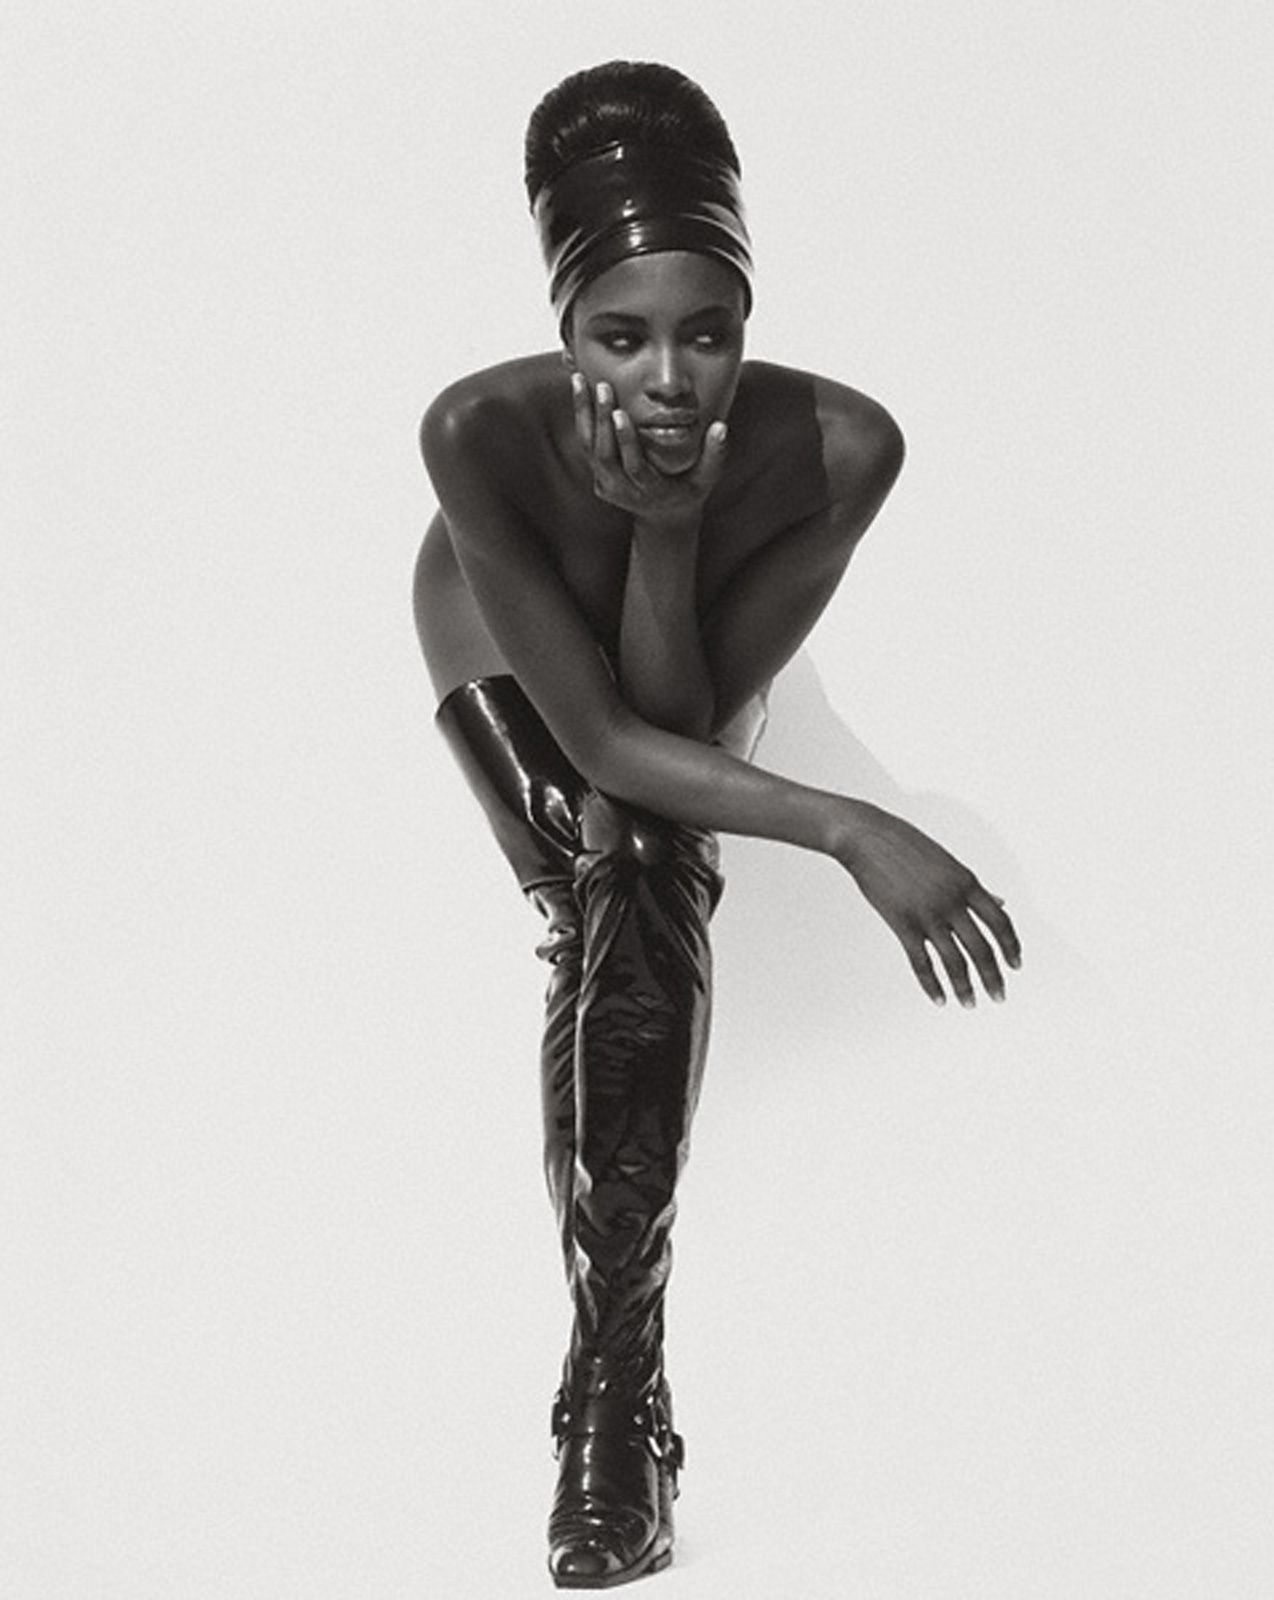 """Naomi Campbell, Face in Hand, Hollywood"", 1990, Herb Ritts,Gift of the Herb Ritts Foundation. © Herb Ritts Foundation"